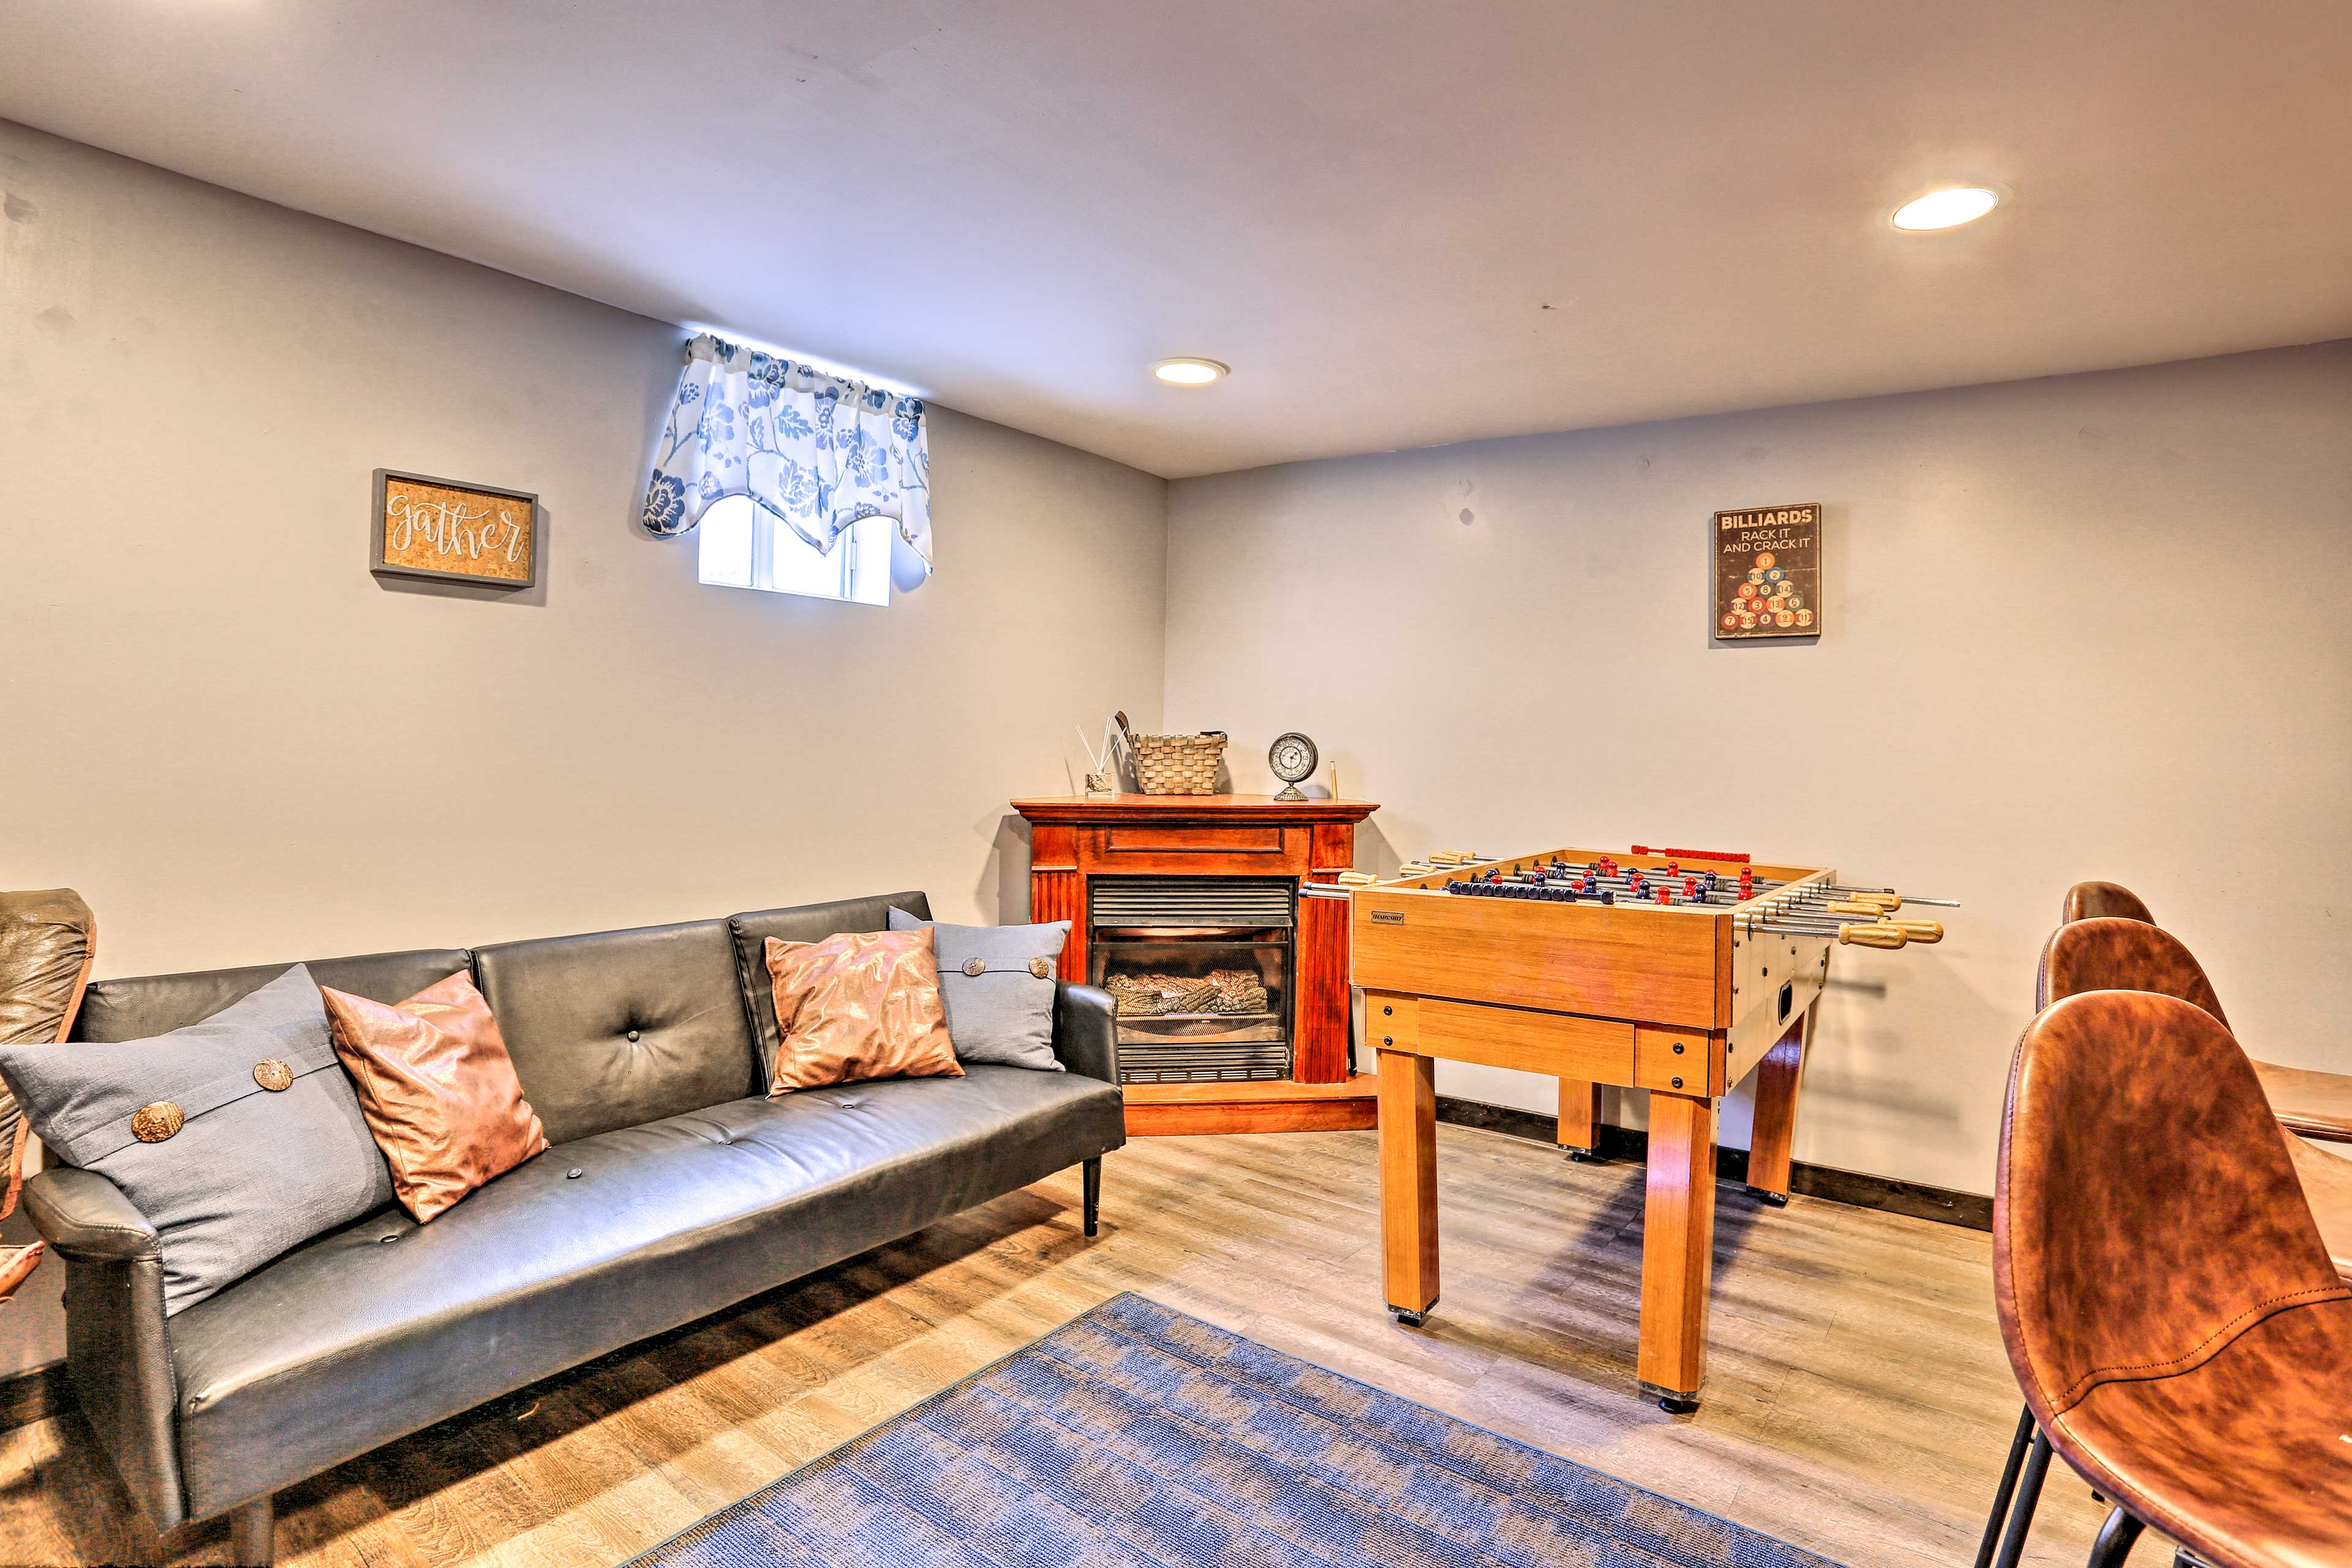 Spend all day reading by the basement fireplace.